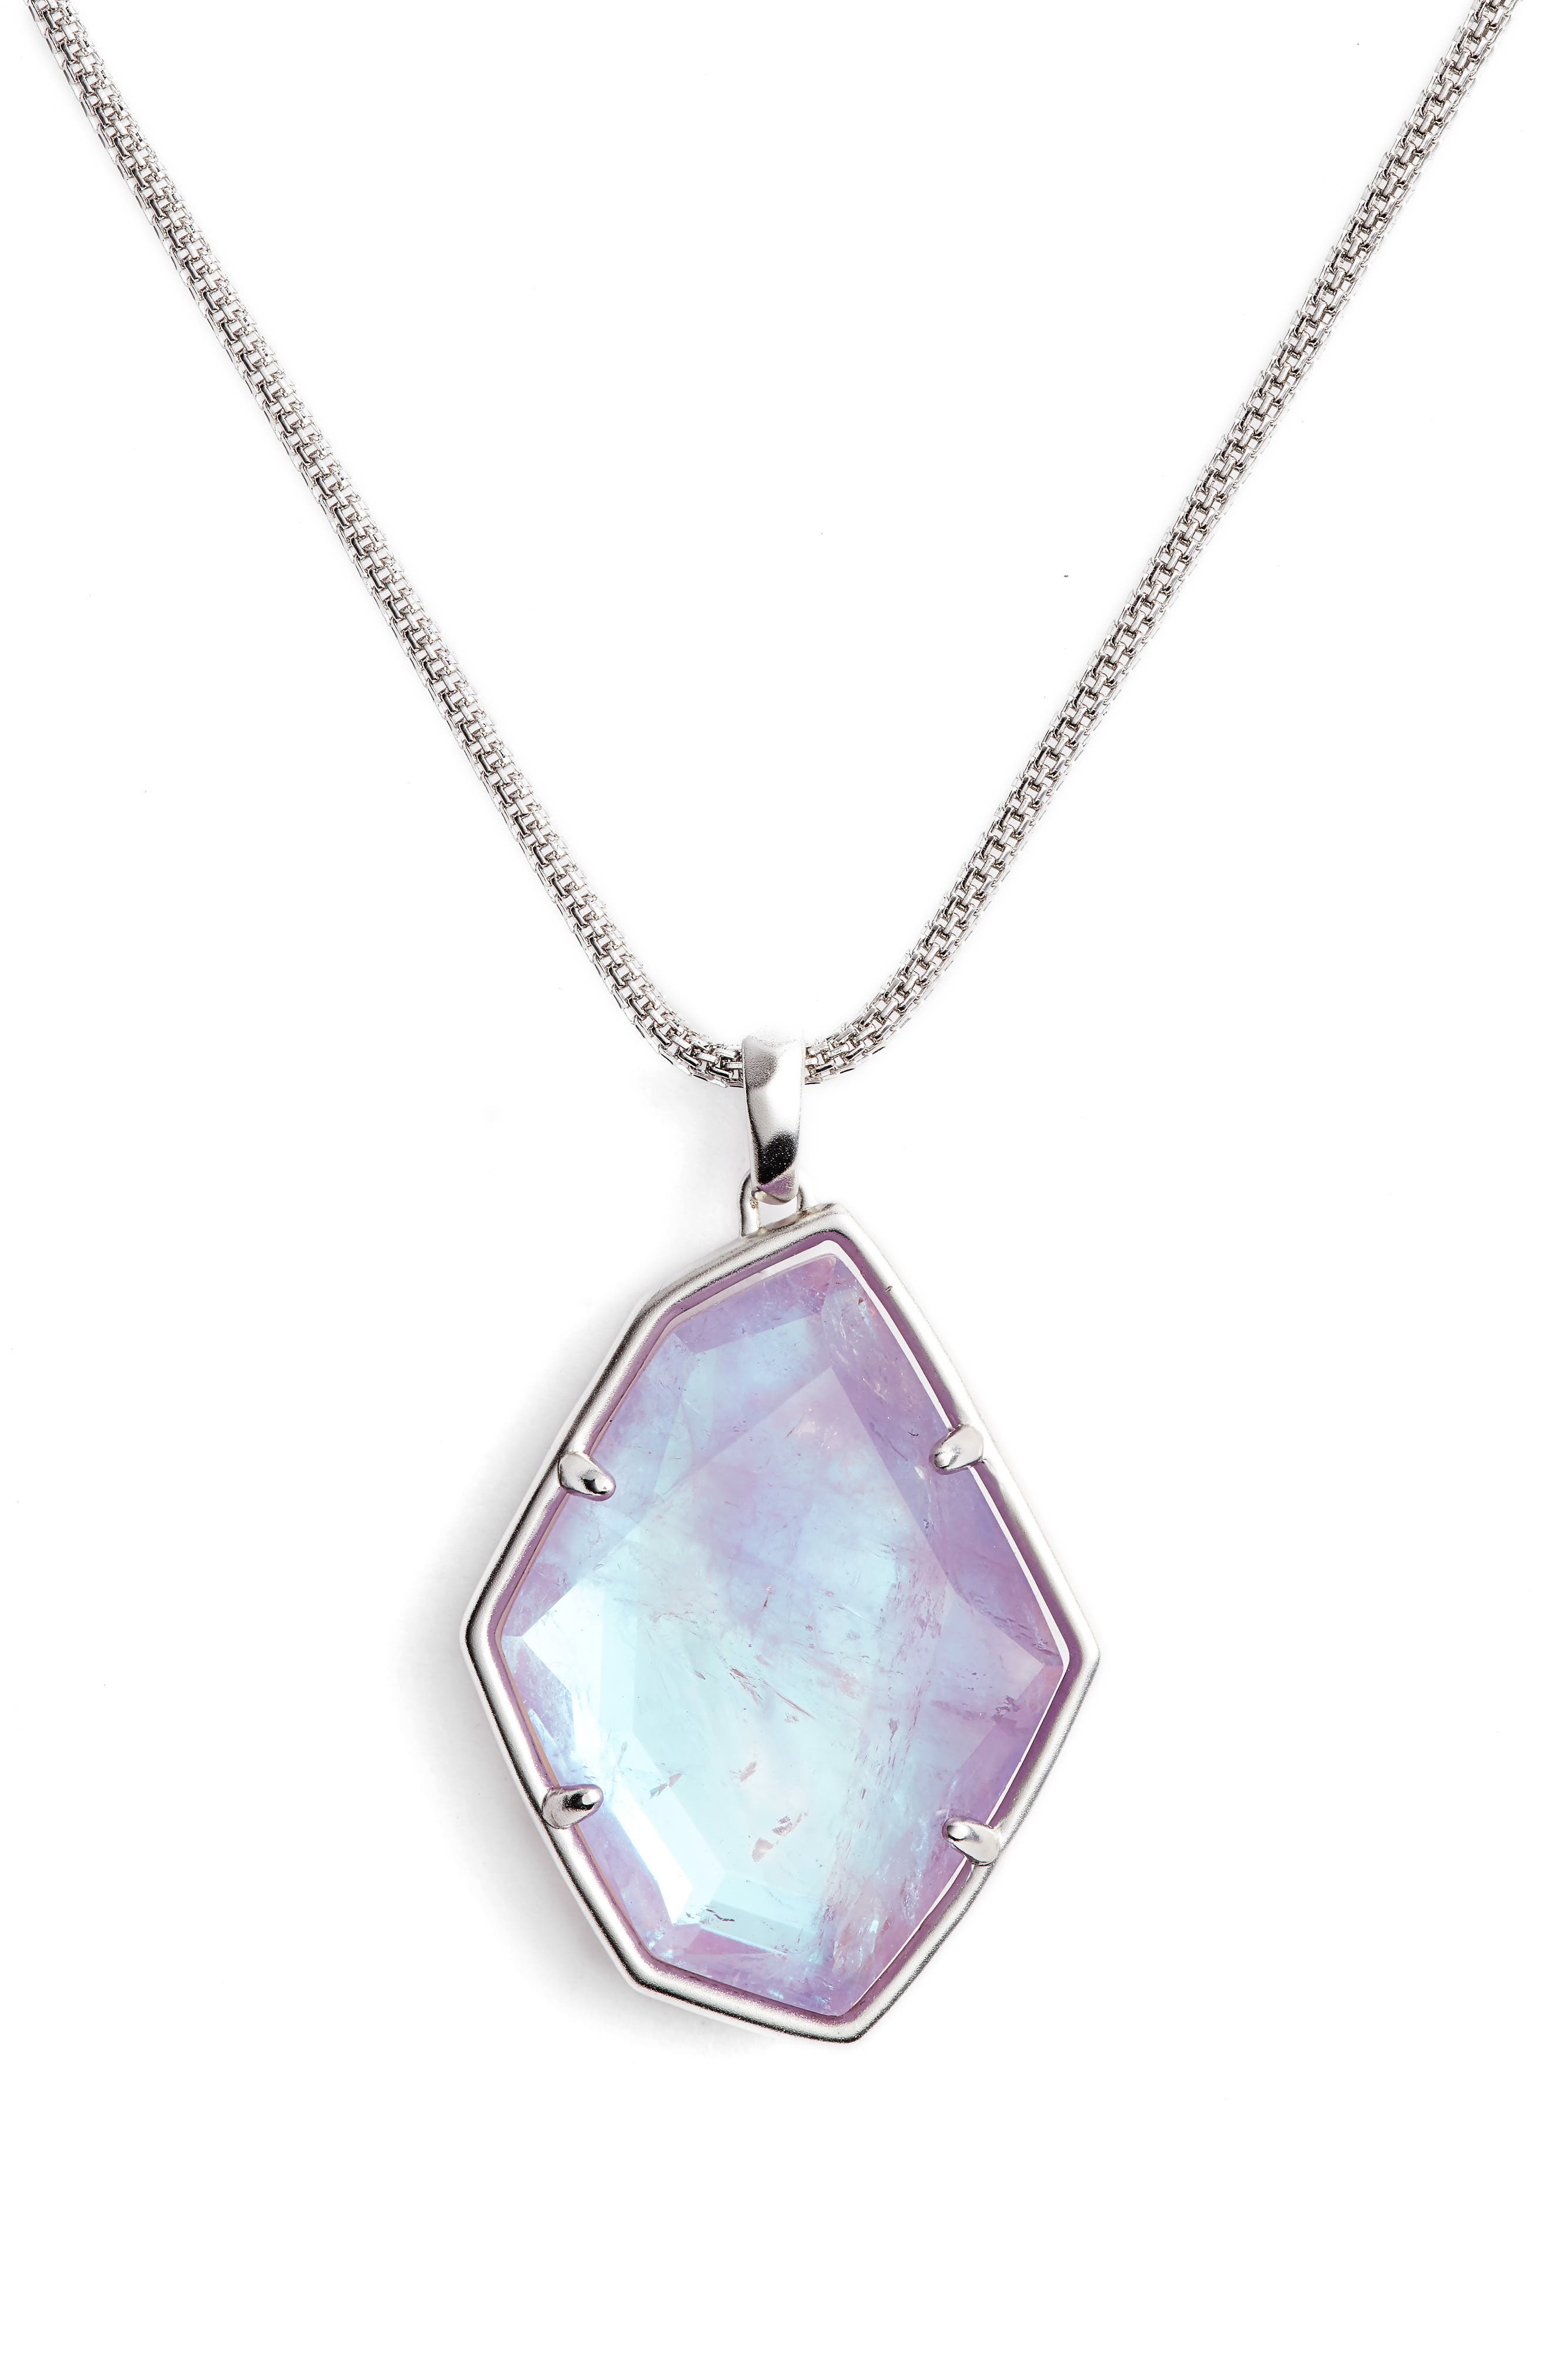 Kalani Long Adjustable Pendant Necklace,                             Alternate thumbnail 2, color,                             AMETHYST DICHROIC/ SILVER